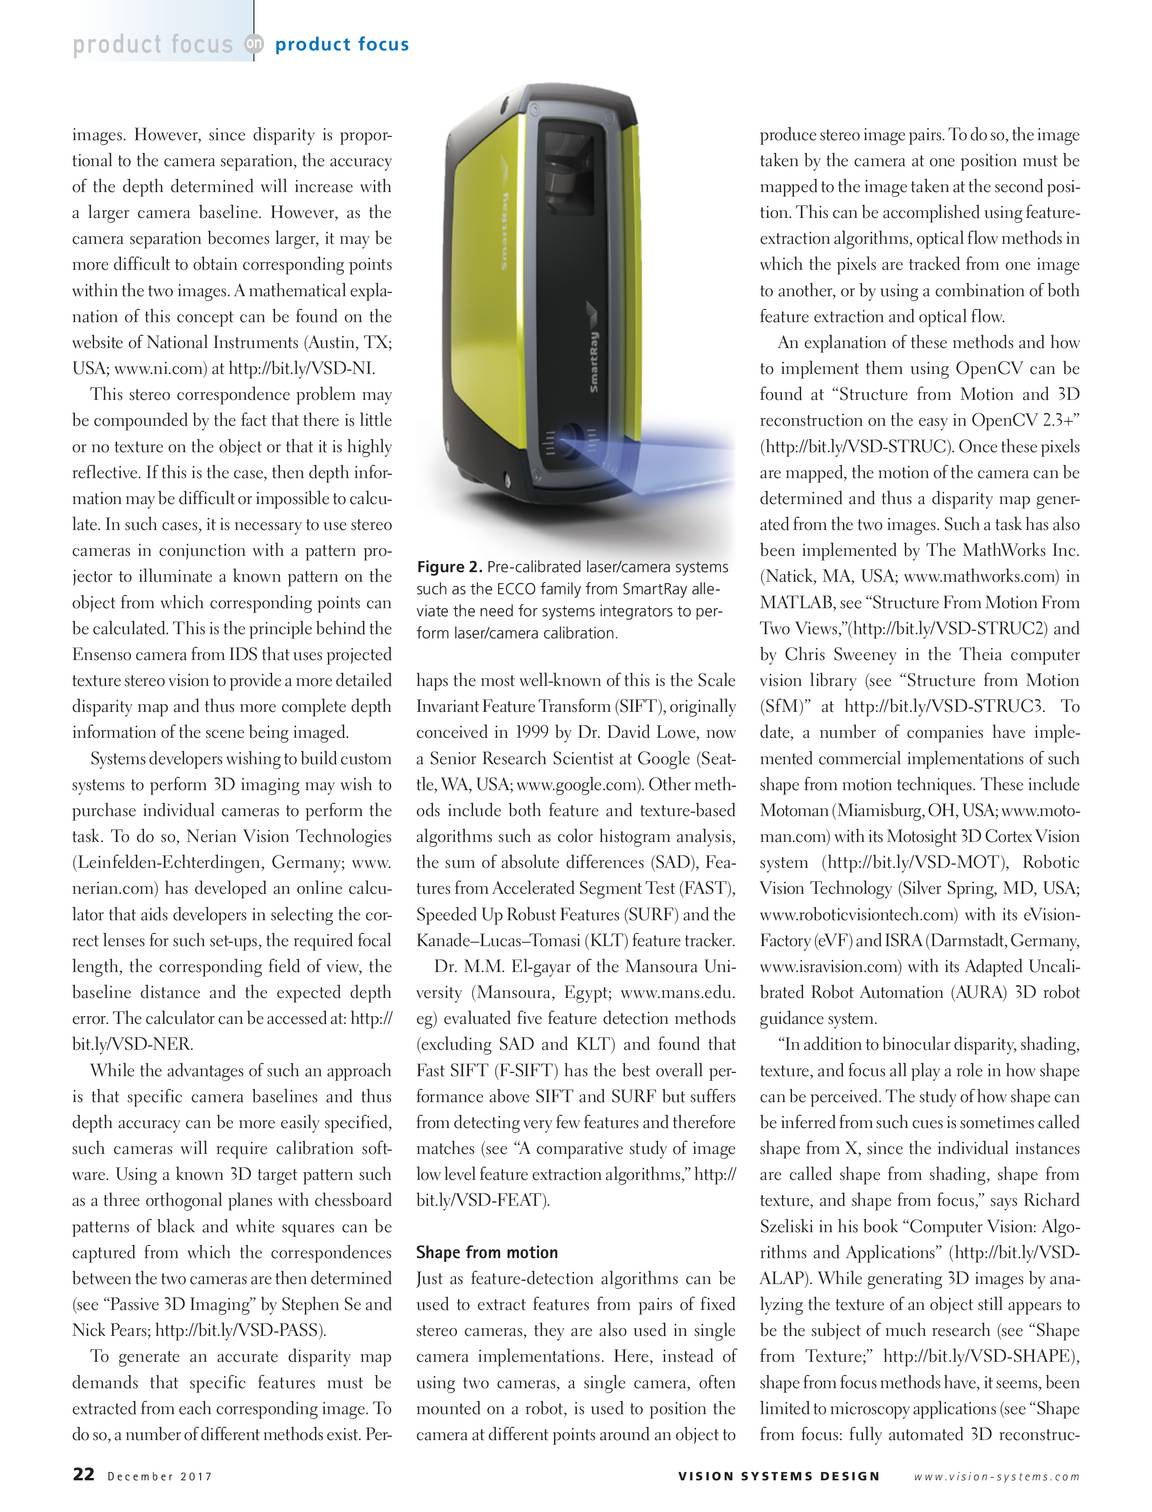 Vision Systems - December 2017 - page 21